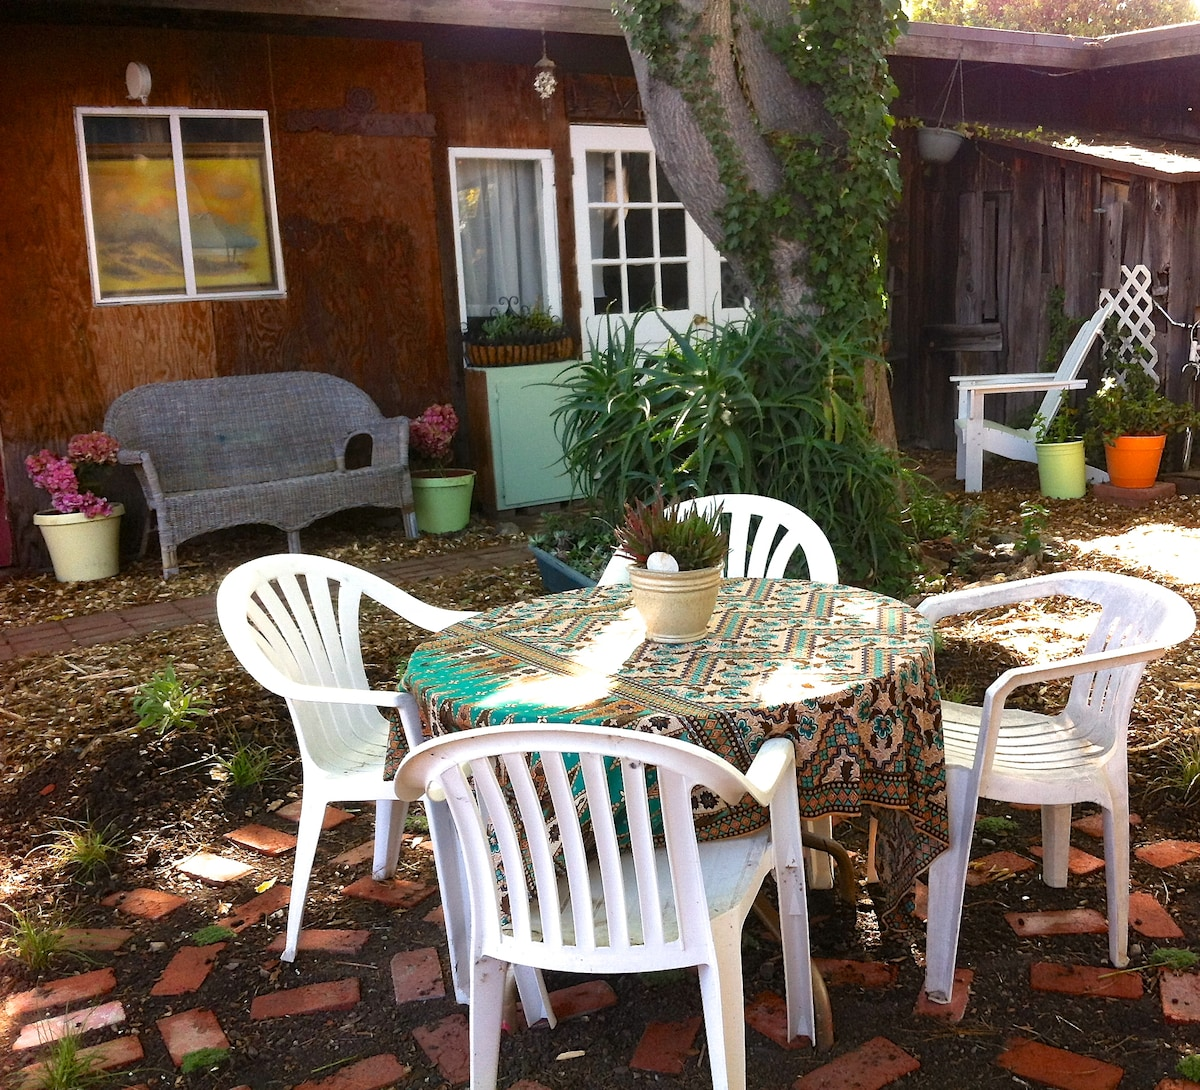 Relax and enjoy our garden retreat.